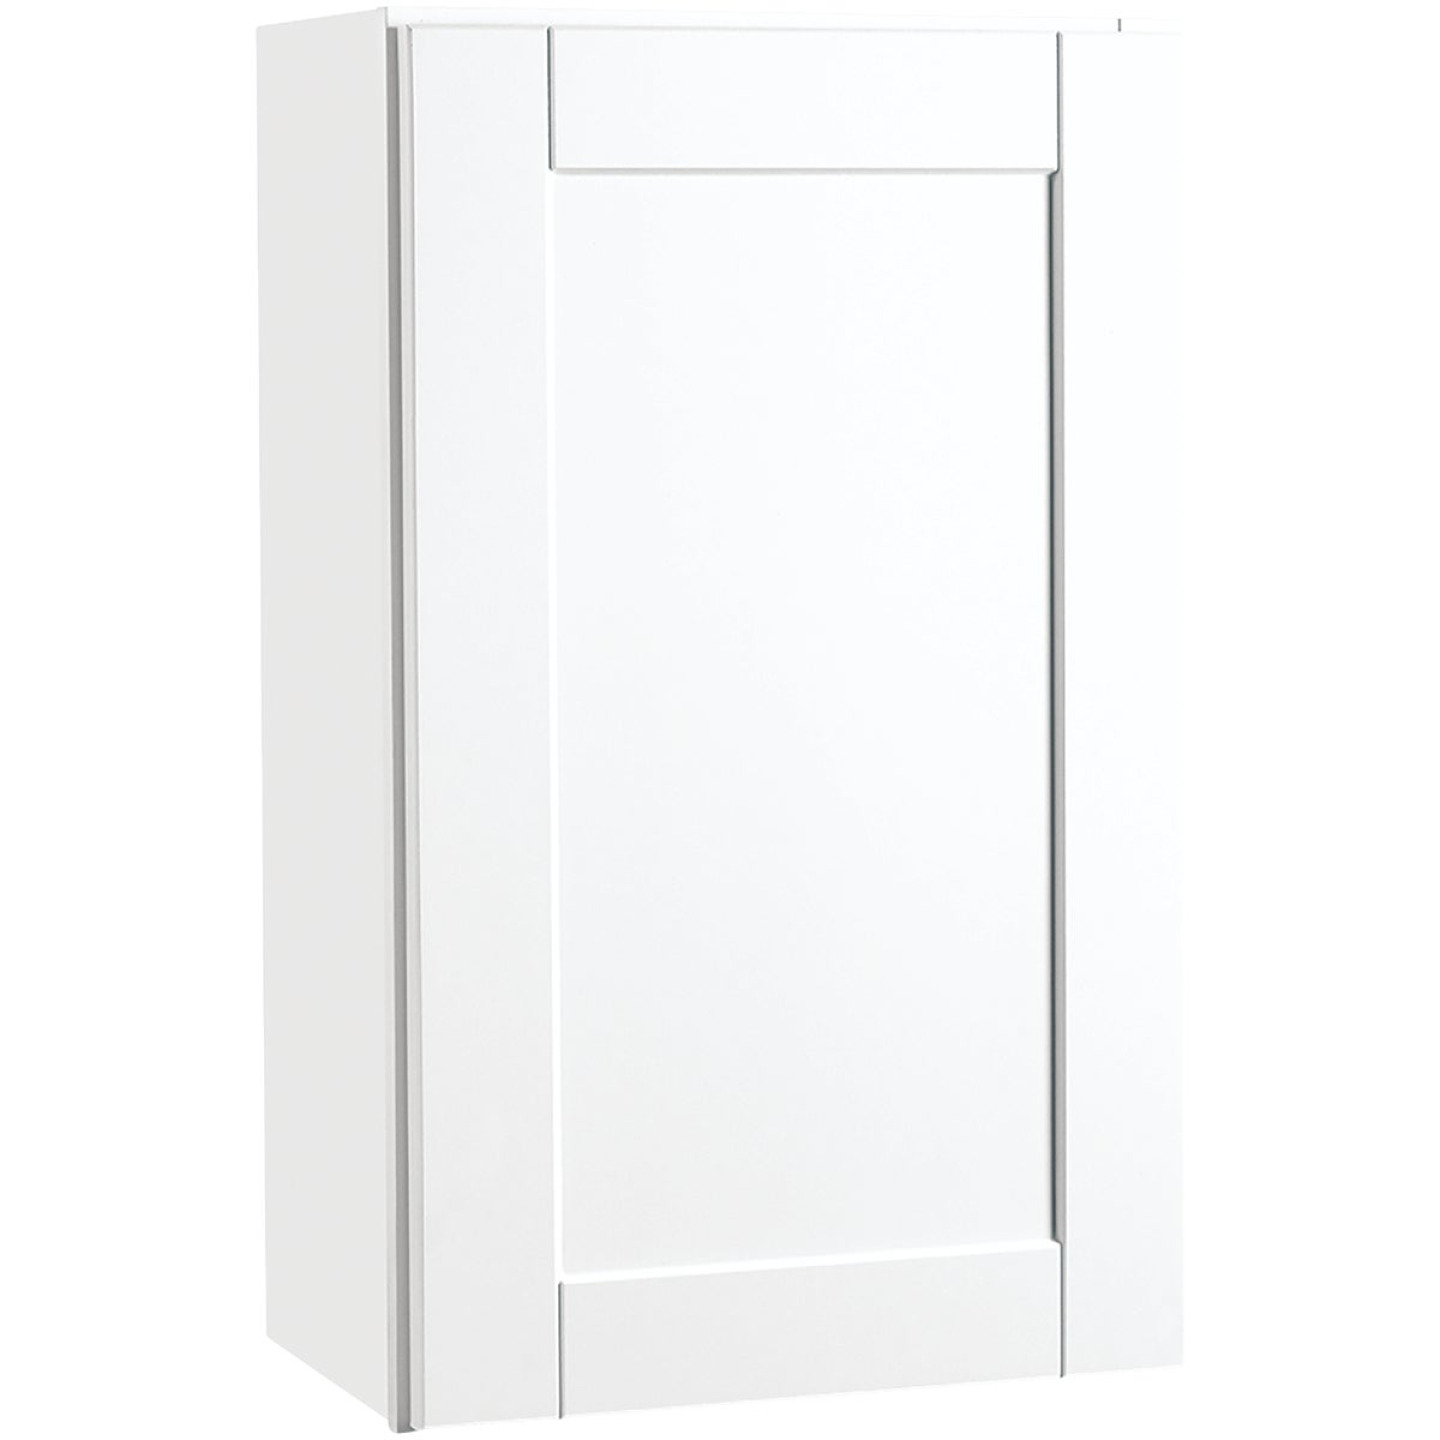 Continental Cabinets Andover Shaker 18 In. W x 30 In. H x 12 In. D White Thermofoil Wall Kitchen Cabinet Image 1